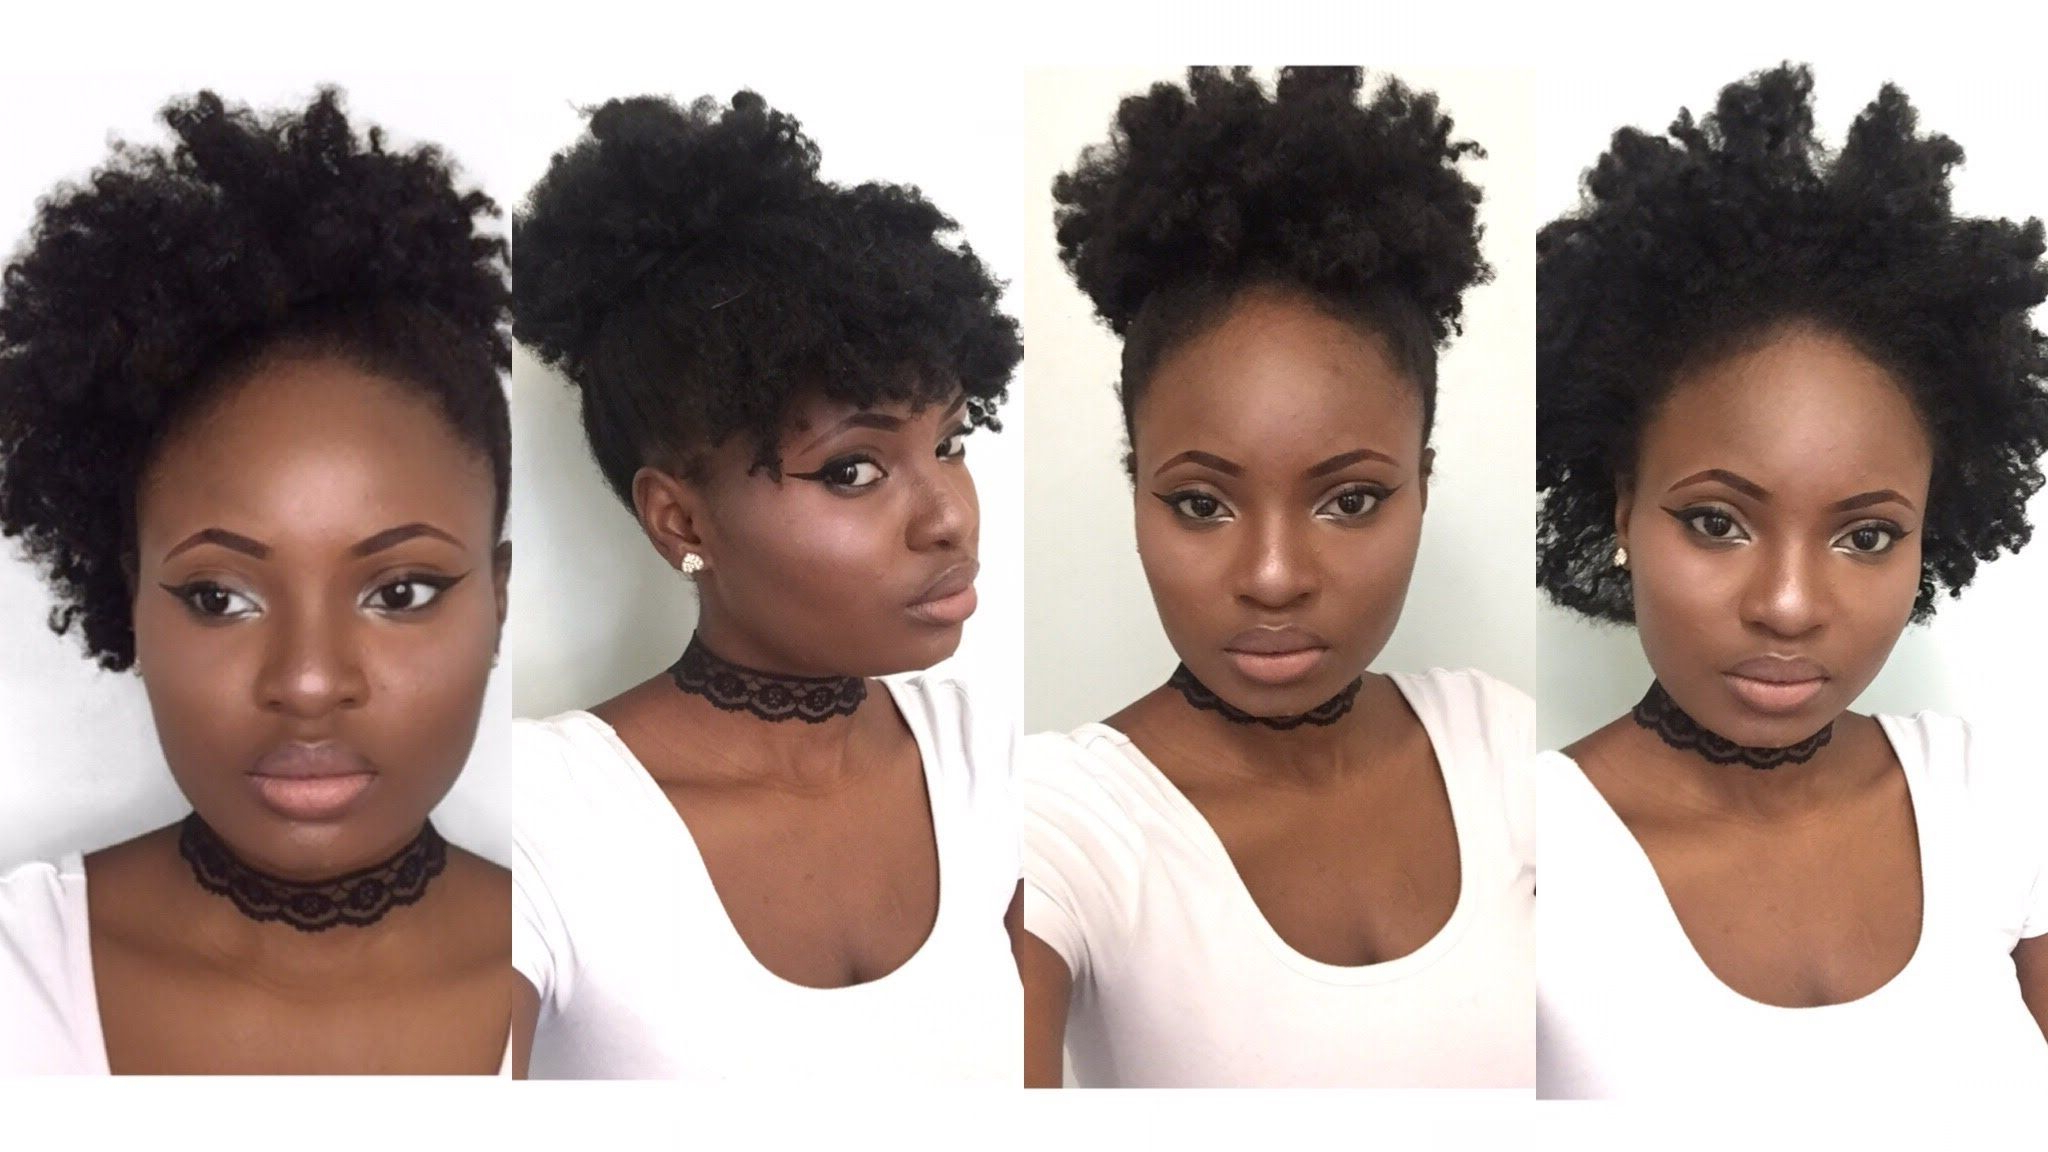 4 Simple Back To School Hairstyles For Medium Natural Hair (4C Throughout Recent Medium Hairstyles For Natural Black Hair (View 3 of 20)